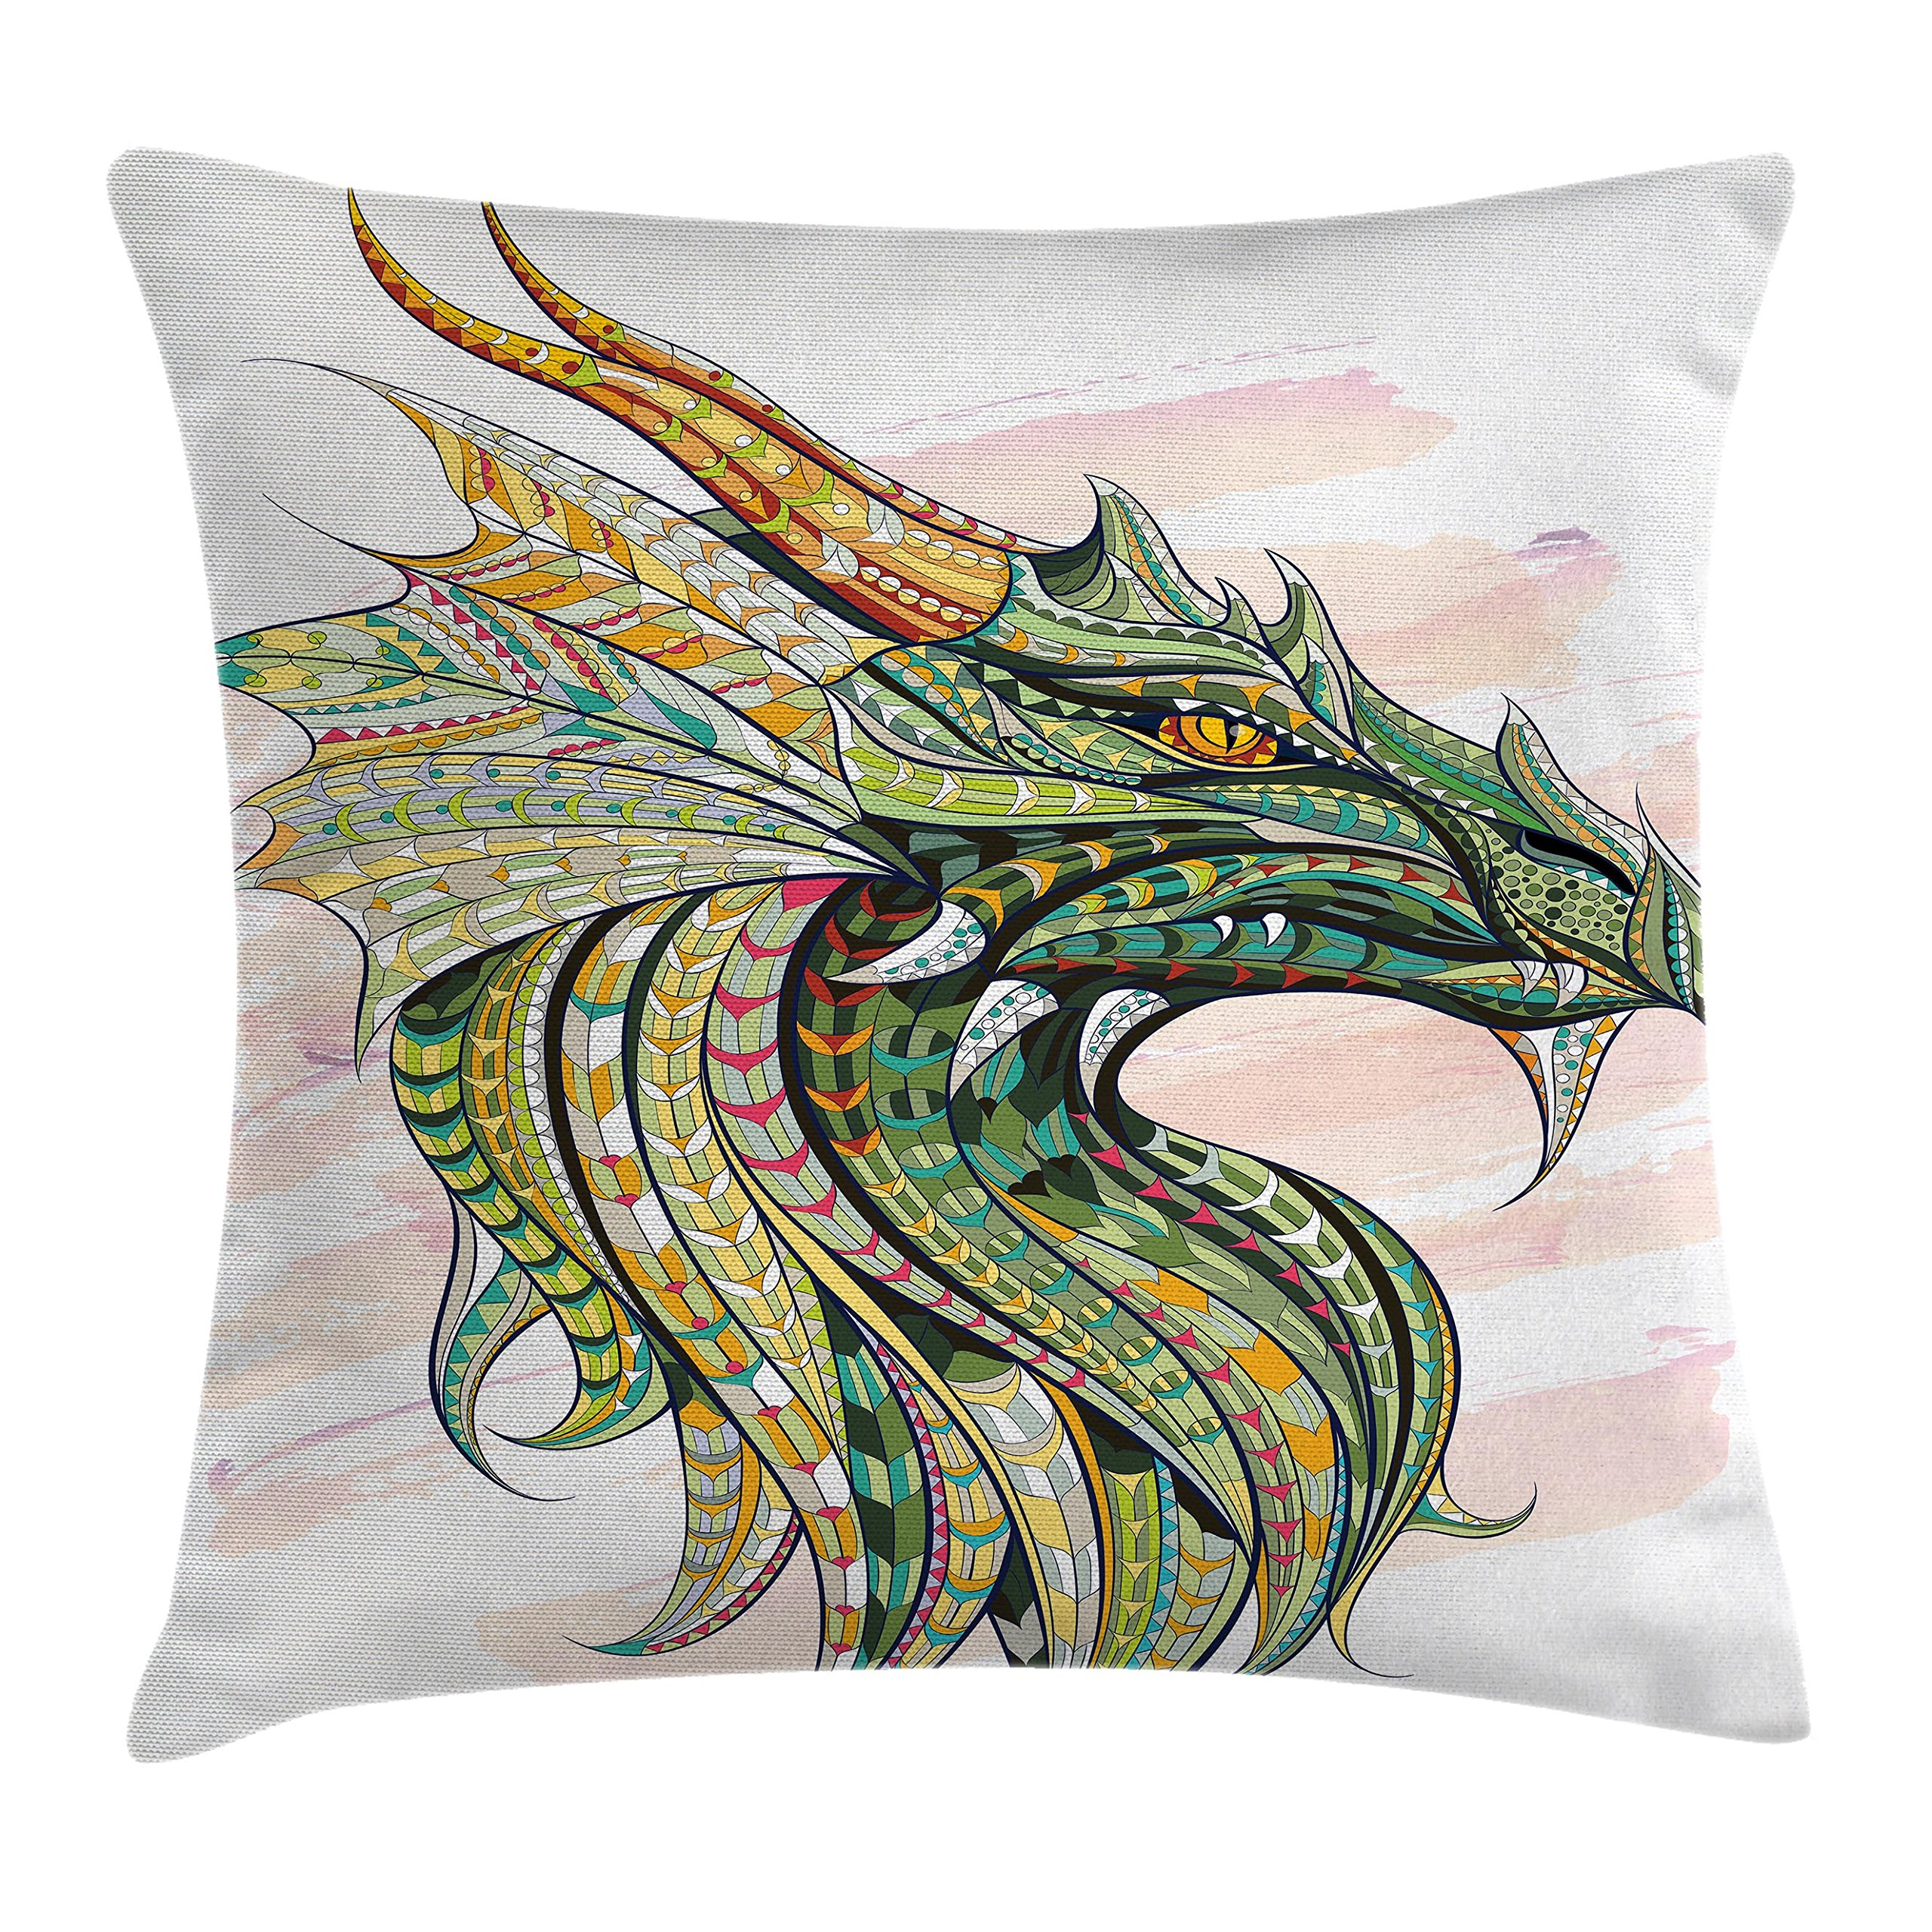 Ambesonne Celtic Decor Throw Pillow Cushion Cover, Head of Legend Dragon with Ethnic African Grunge Backdrop Myth Celtic Art Design, Decorative Square Accent Pillow Case, 16 X 16 Inches, Multi